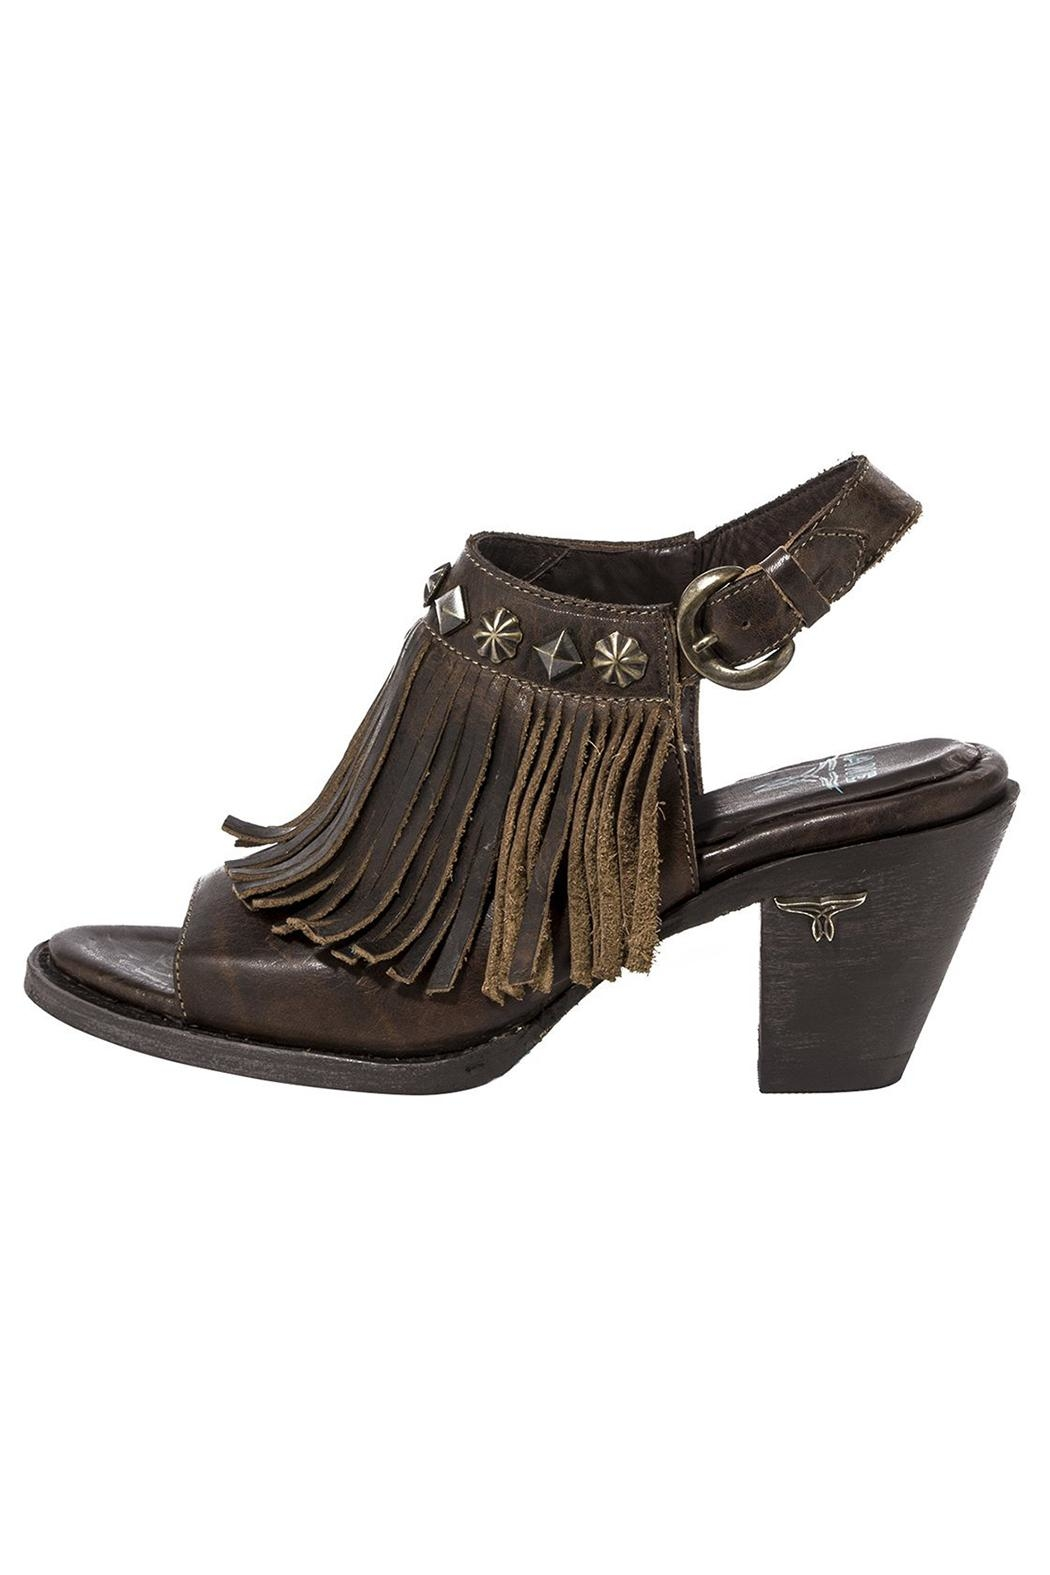 Lane Boots Cody Leather Sandals - Front Full Image